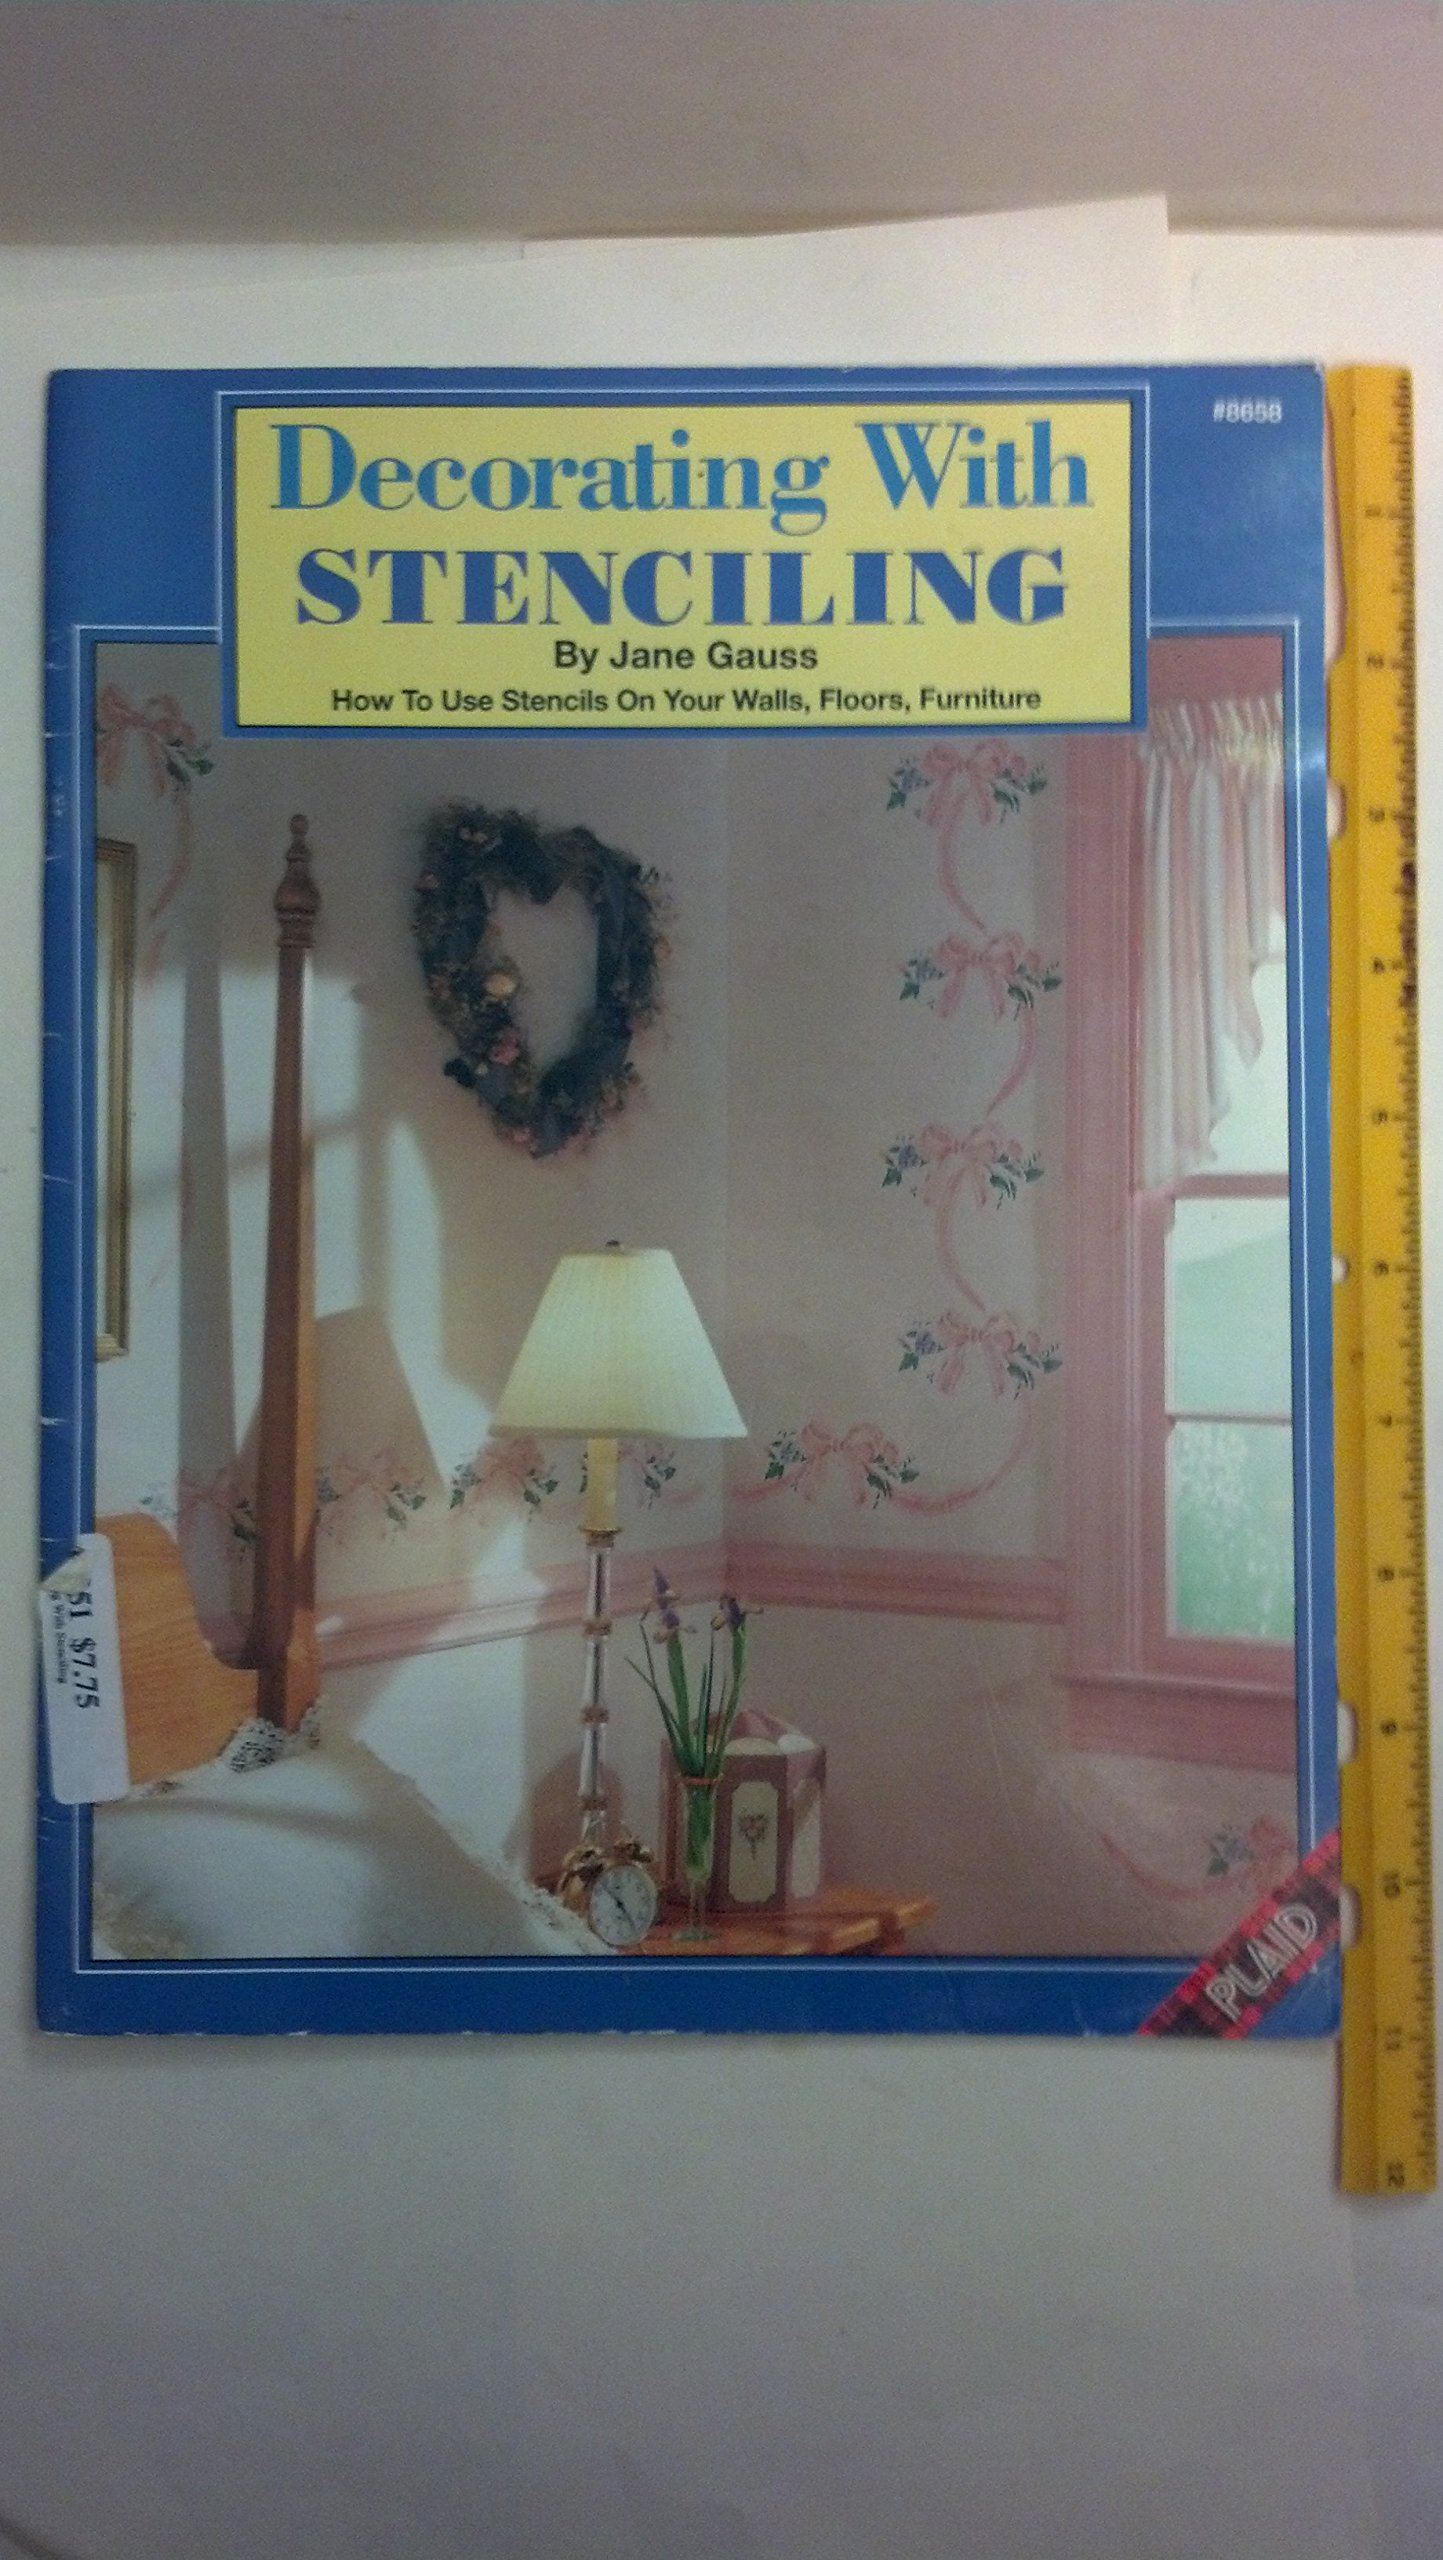 Decorating with Stenciling